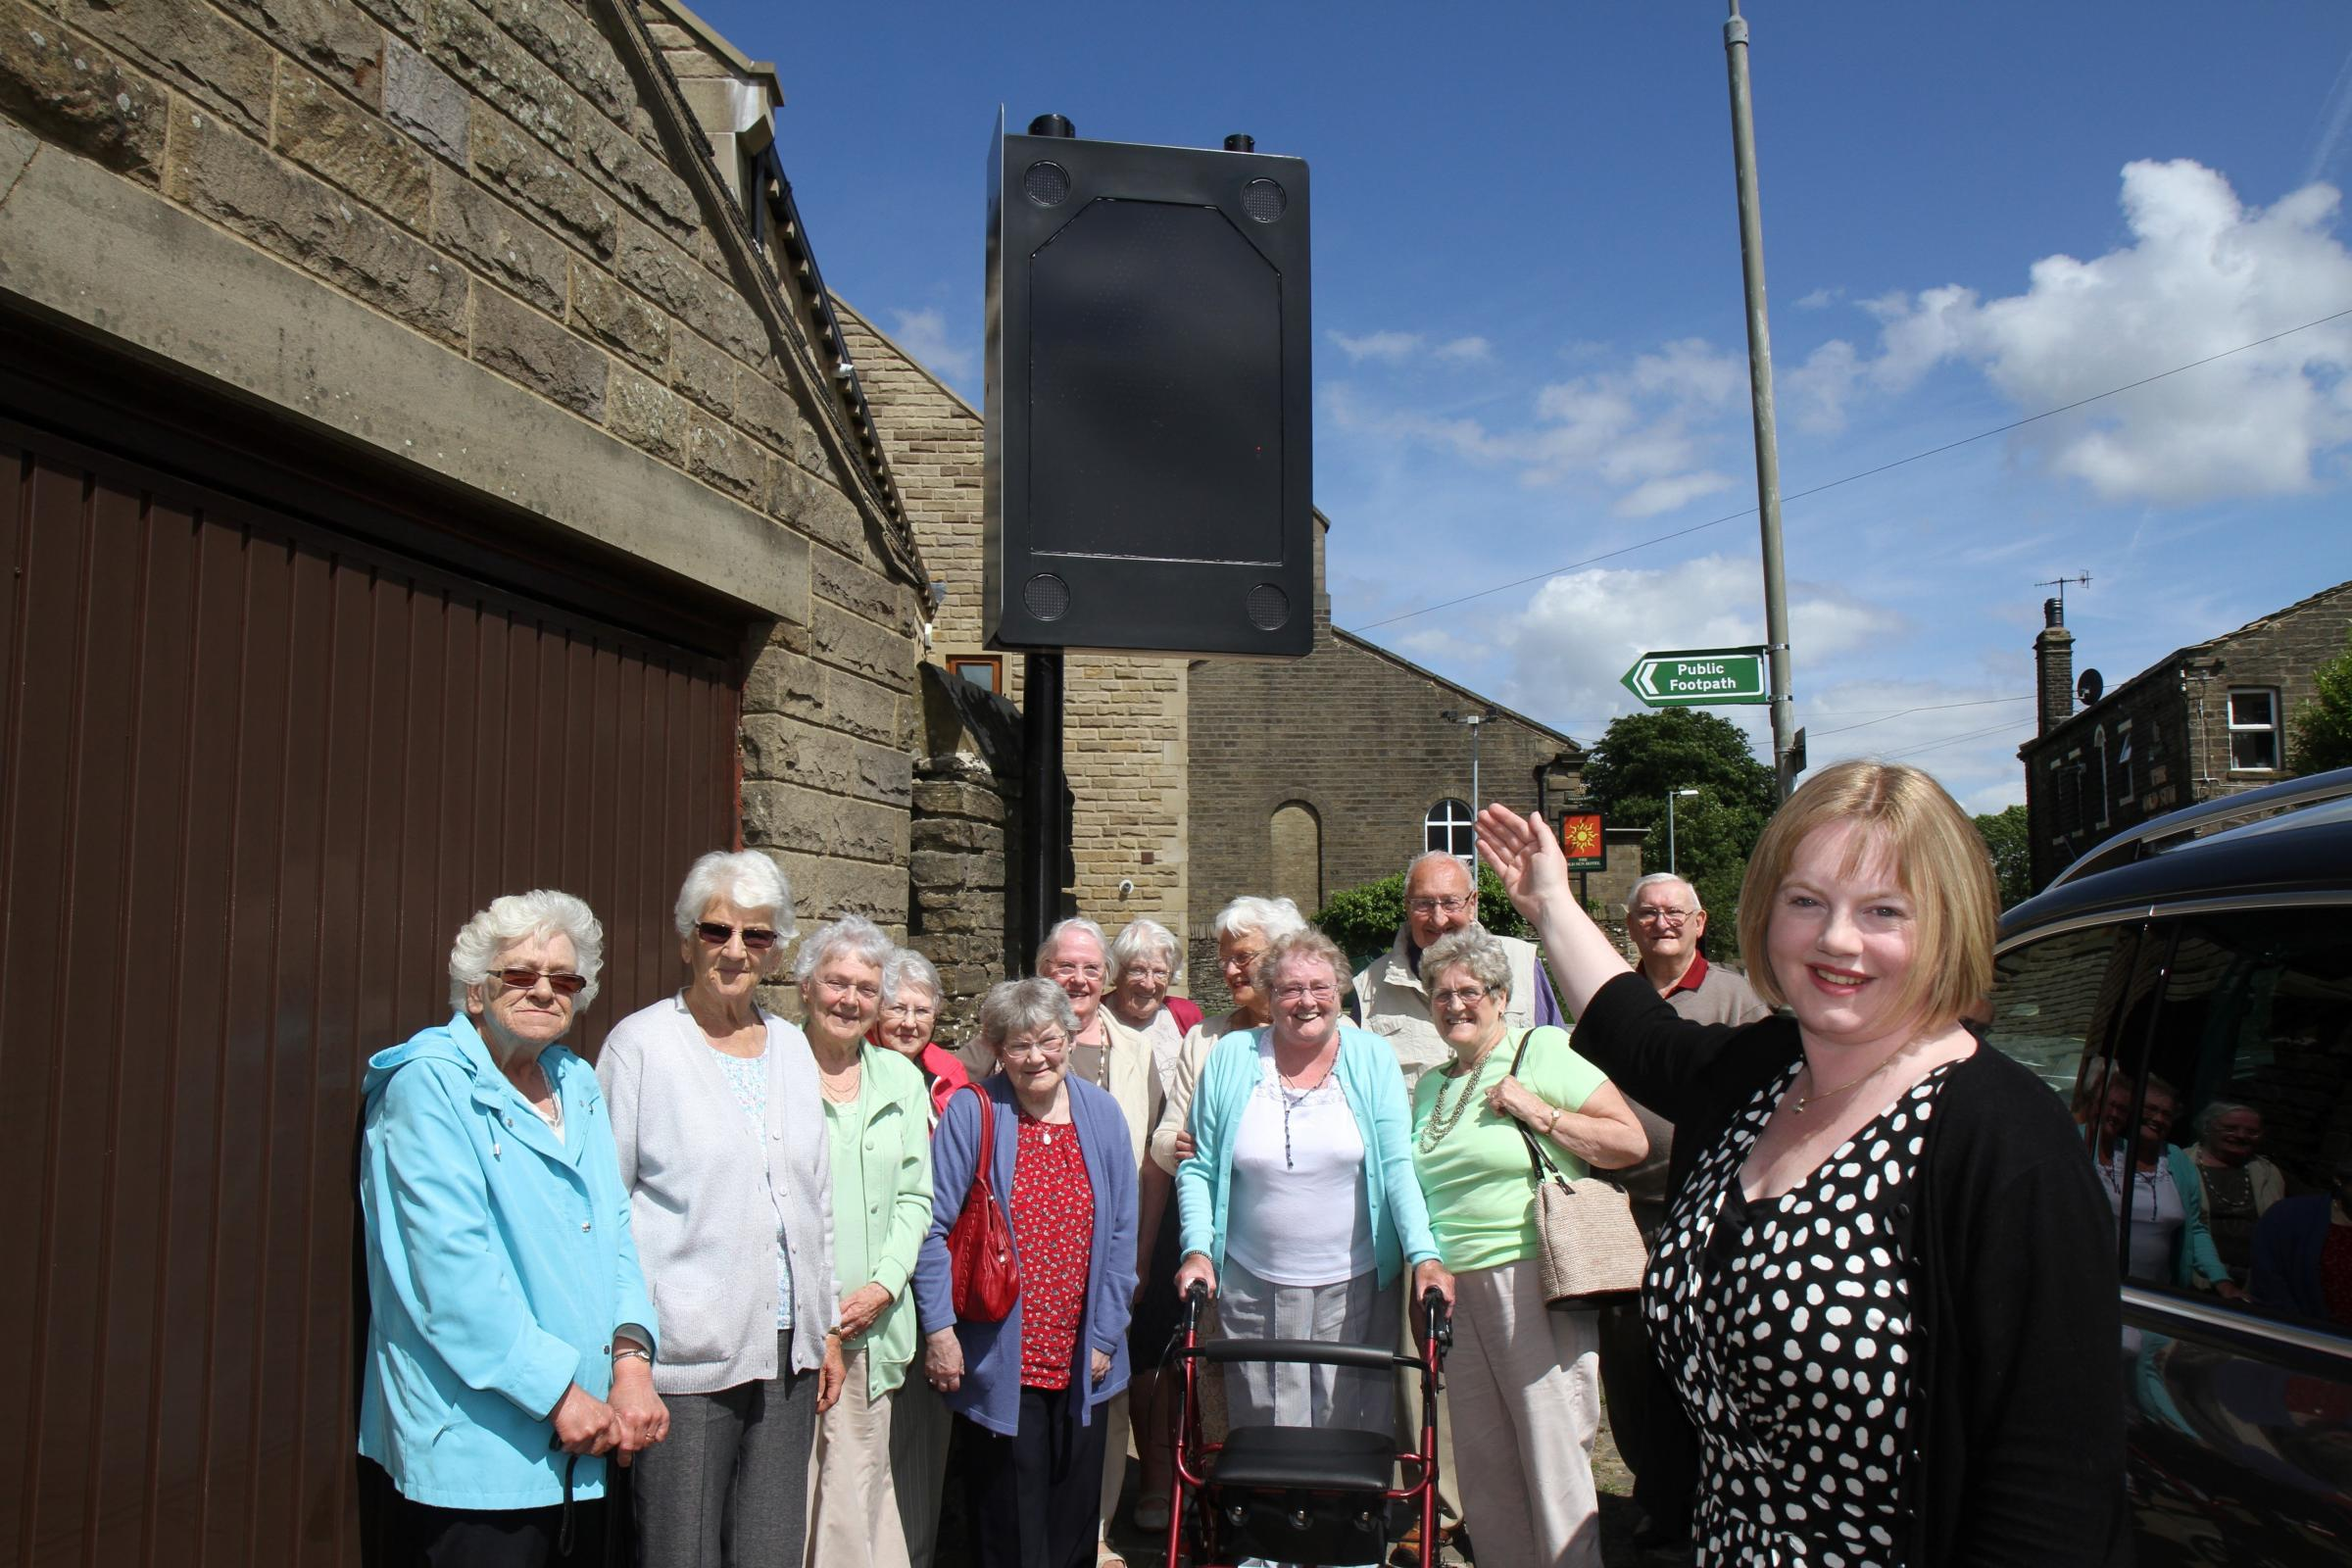 Electronic speed warning sign installed in West Lane, Haworth